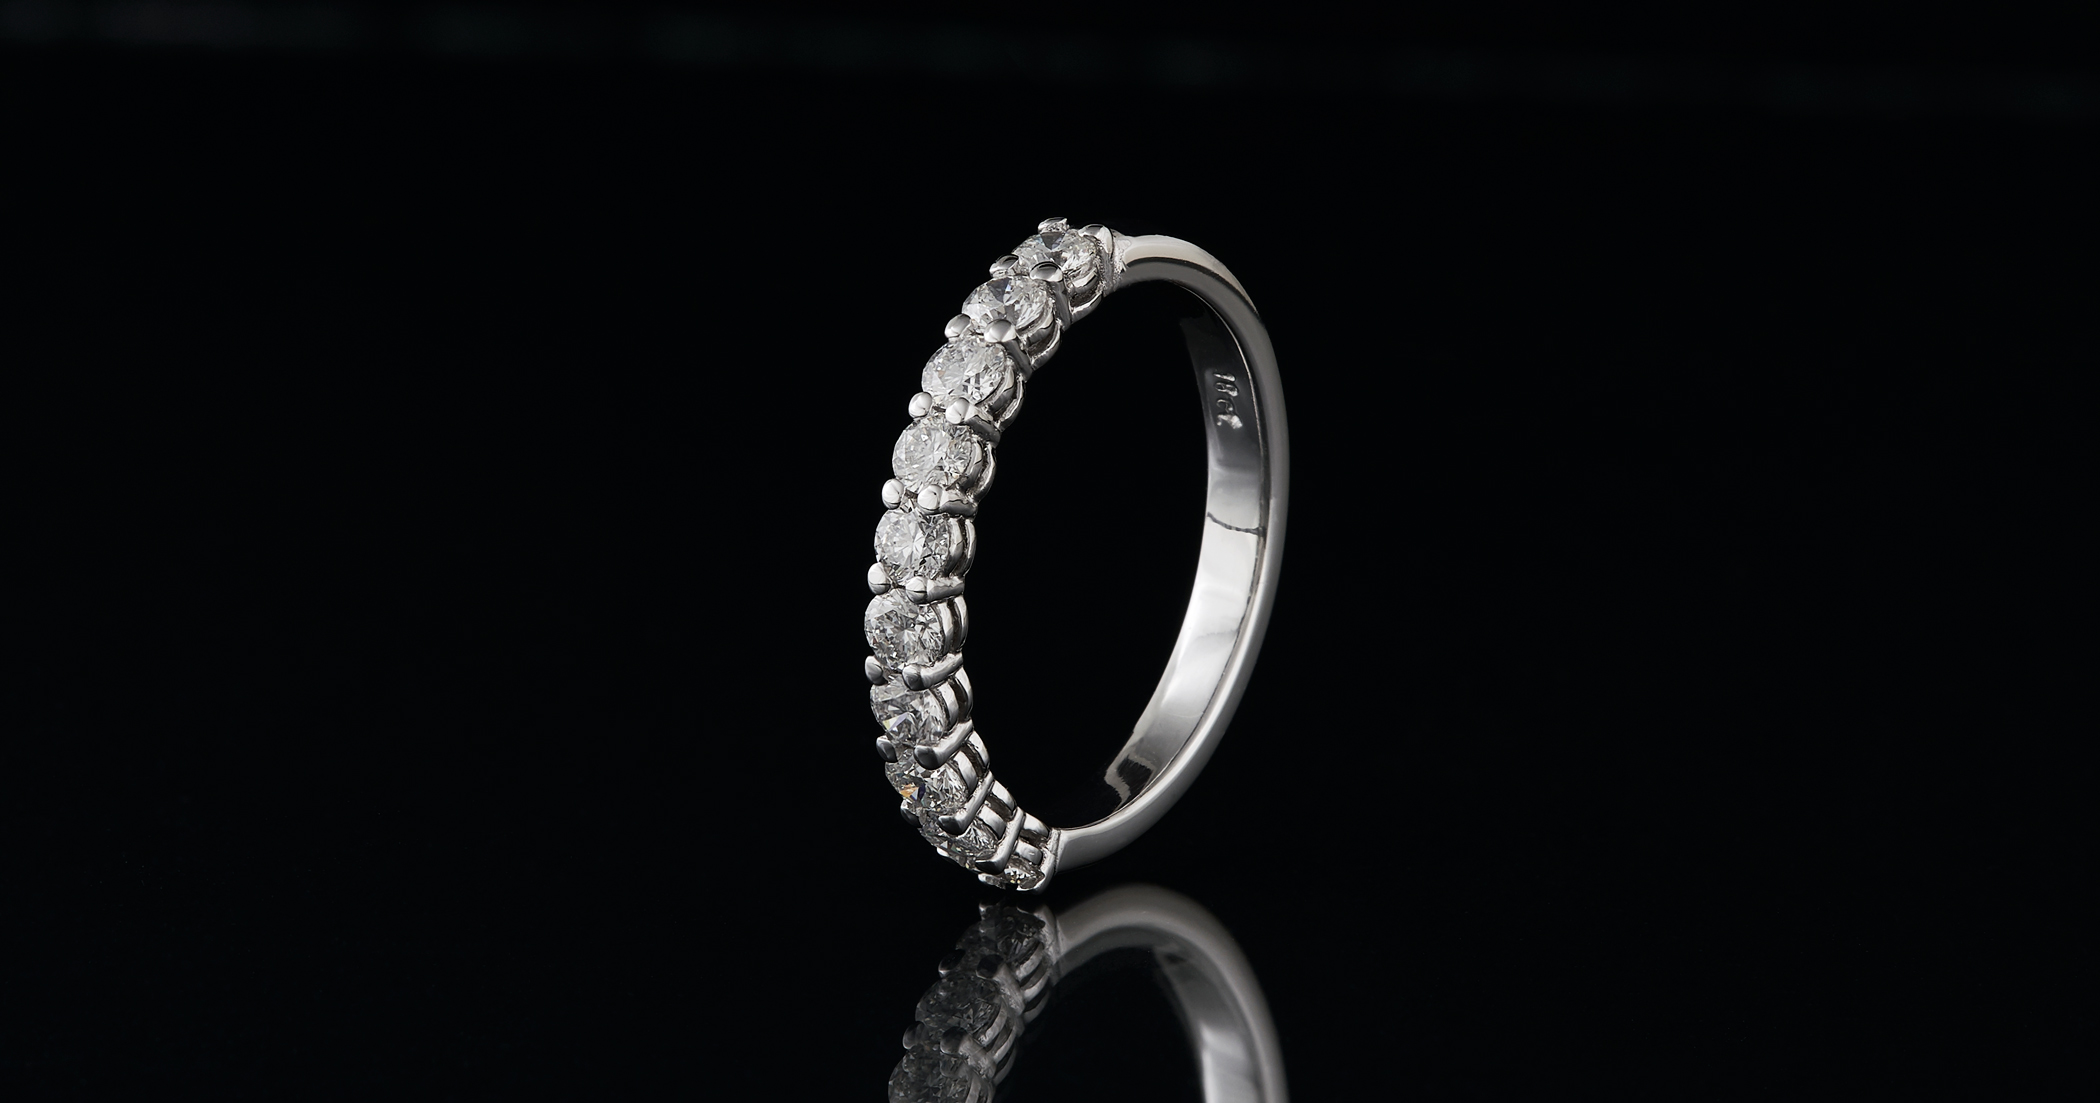 The ring with 10 diamonds.